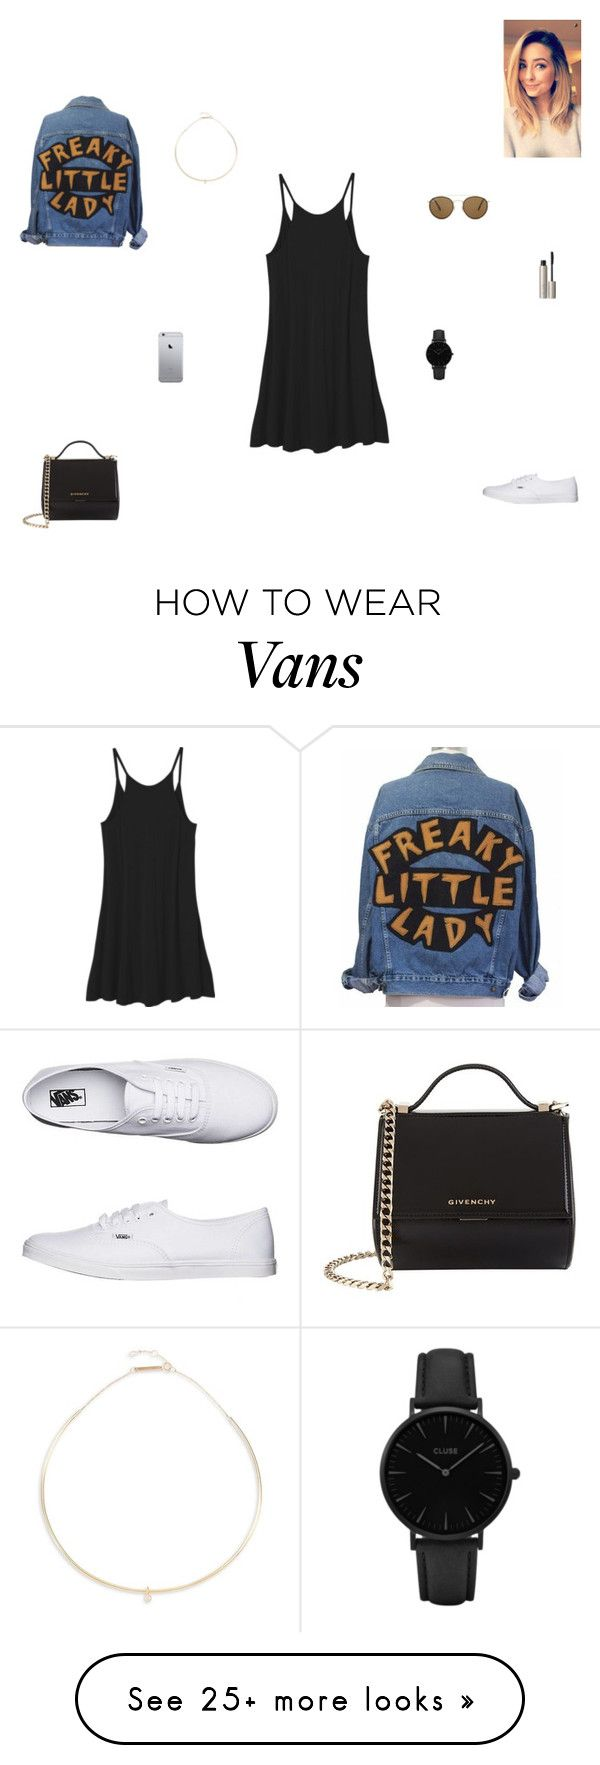 """freaky little lady"" by synclairel on Polyvore featuring RVCA, Vans, Givenchy, CLUSE, Ilia, Ray-Ban, Zoë Chicco, Spring, cute and casual"